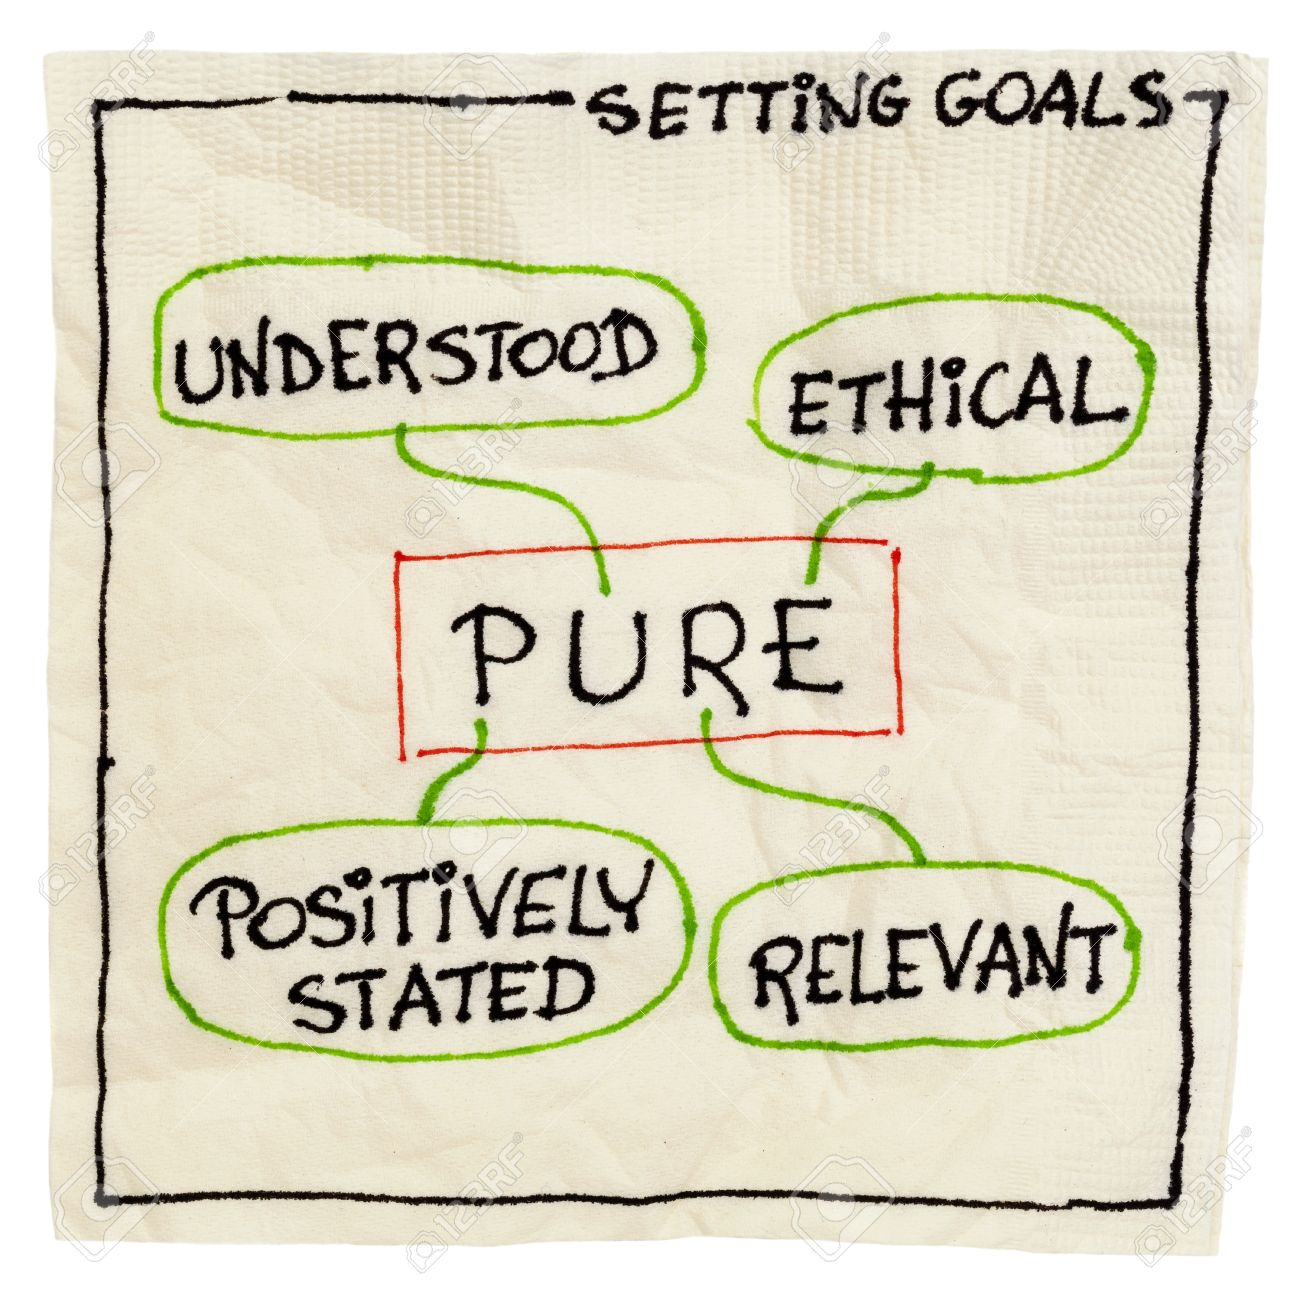 PURE (positively stated, understood, relevant, ethical) goal setting concept - a napkin doodle isolated on white Stock Photo - 15031363